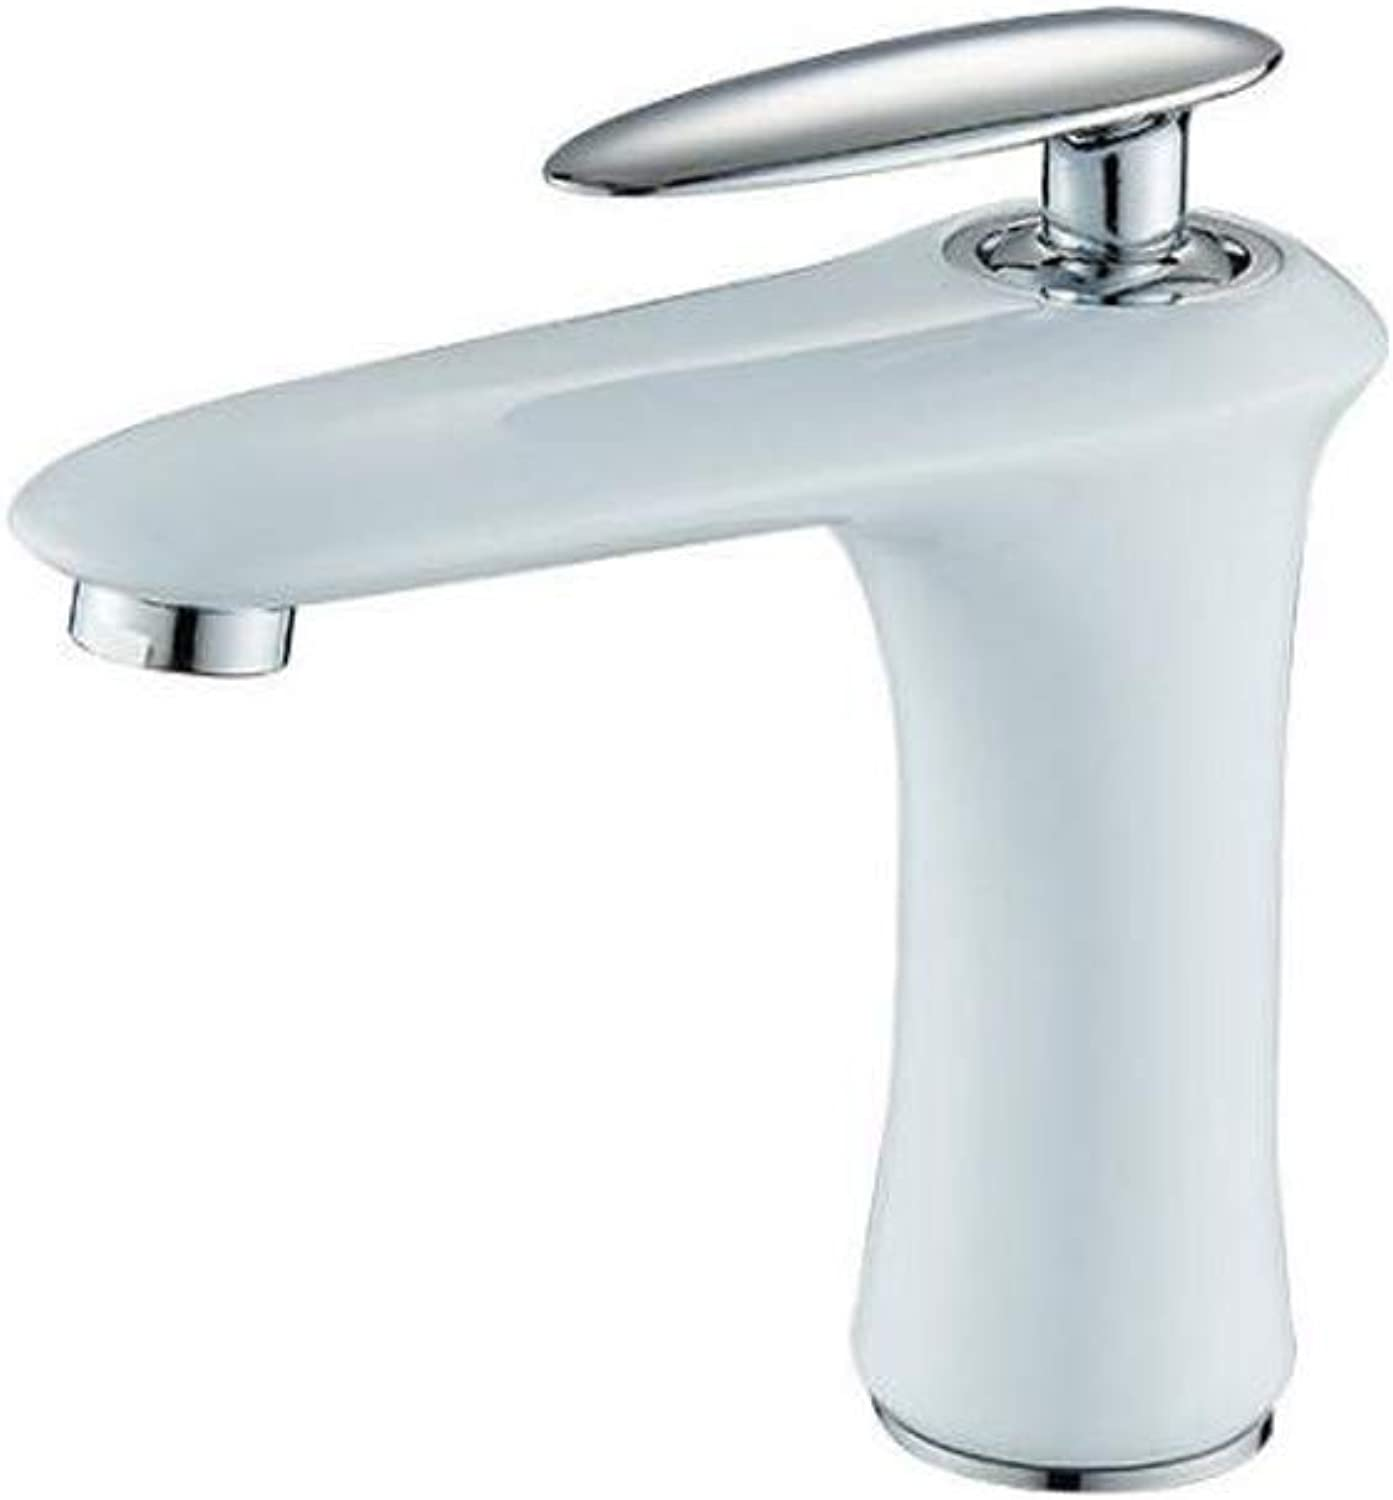 Tian Mi Modern BathroomTaps Mixer White Plating Chrome Finish Hot And Cold Water Brass Basin Faucet,WhiteFaucet,Short